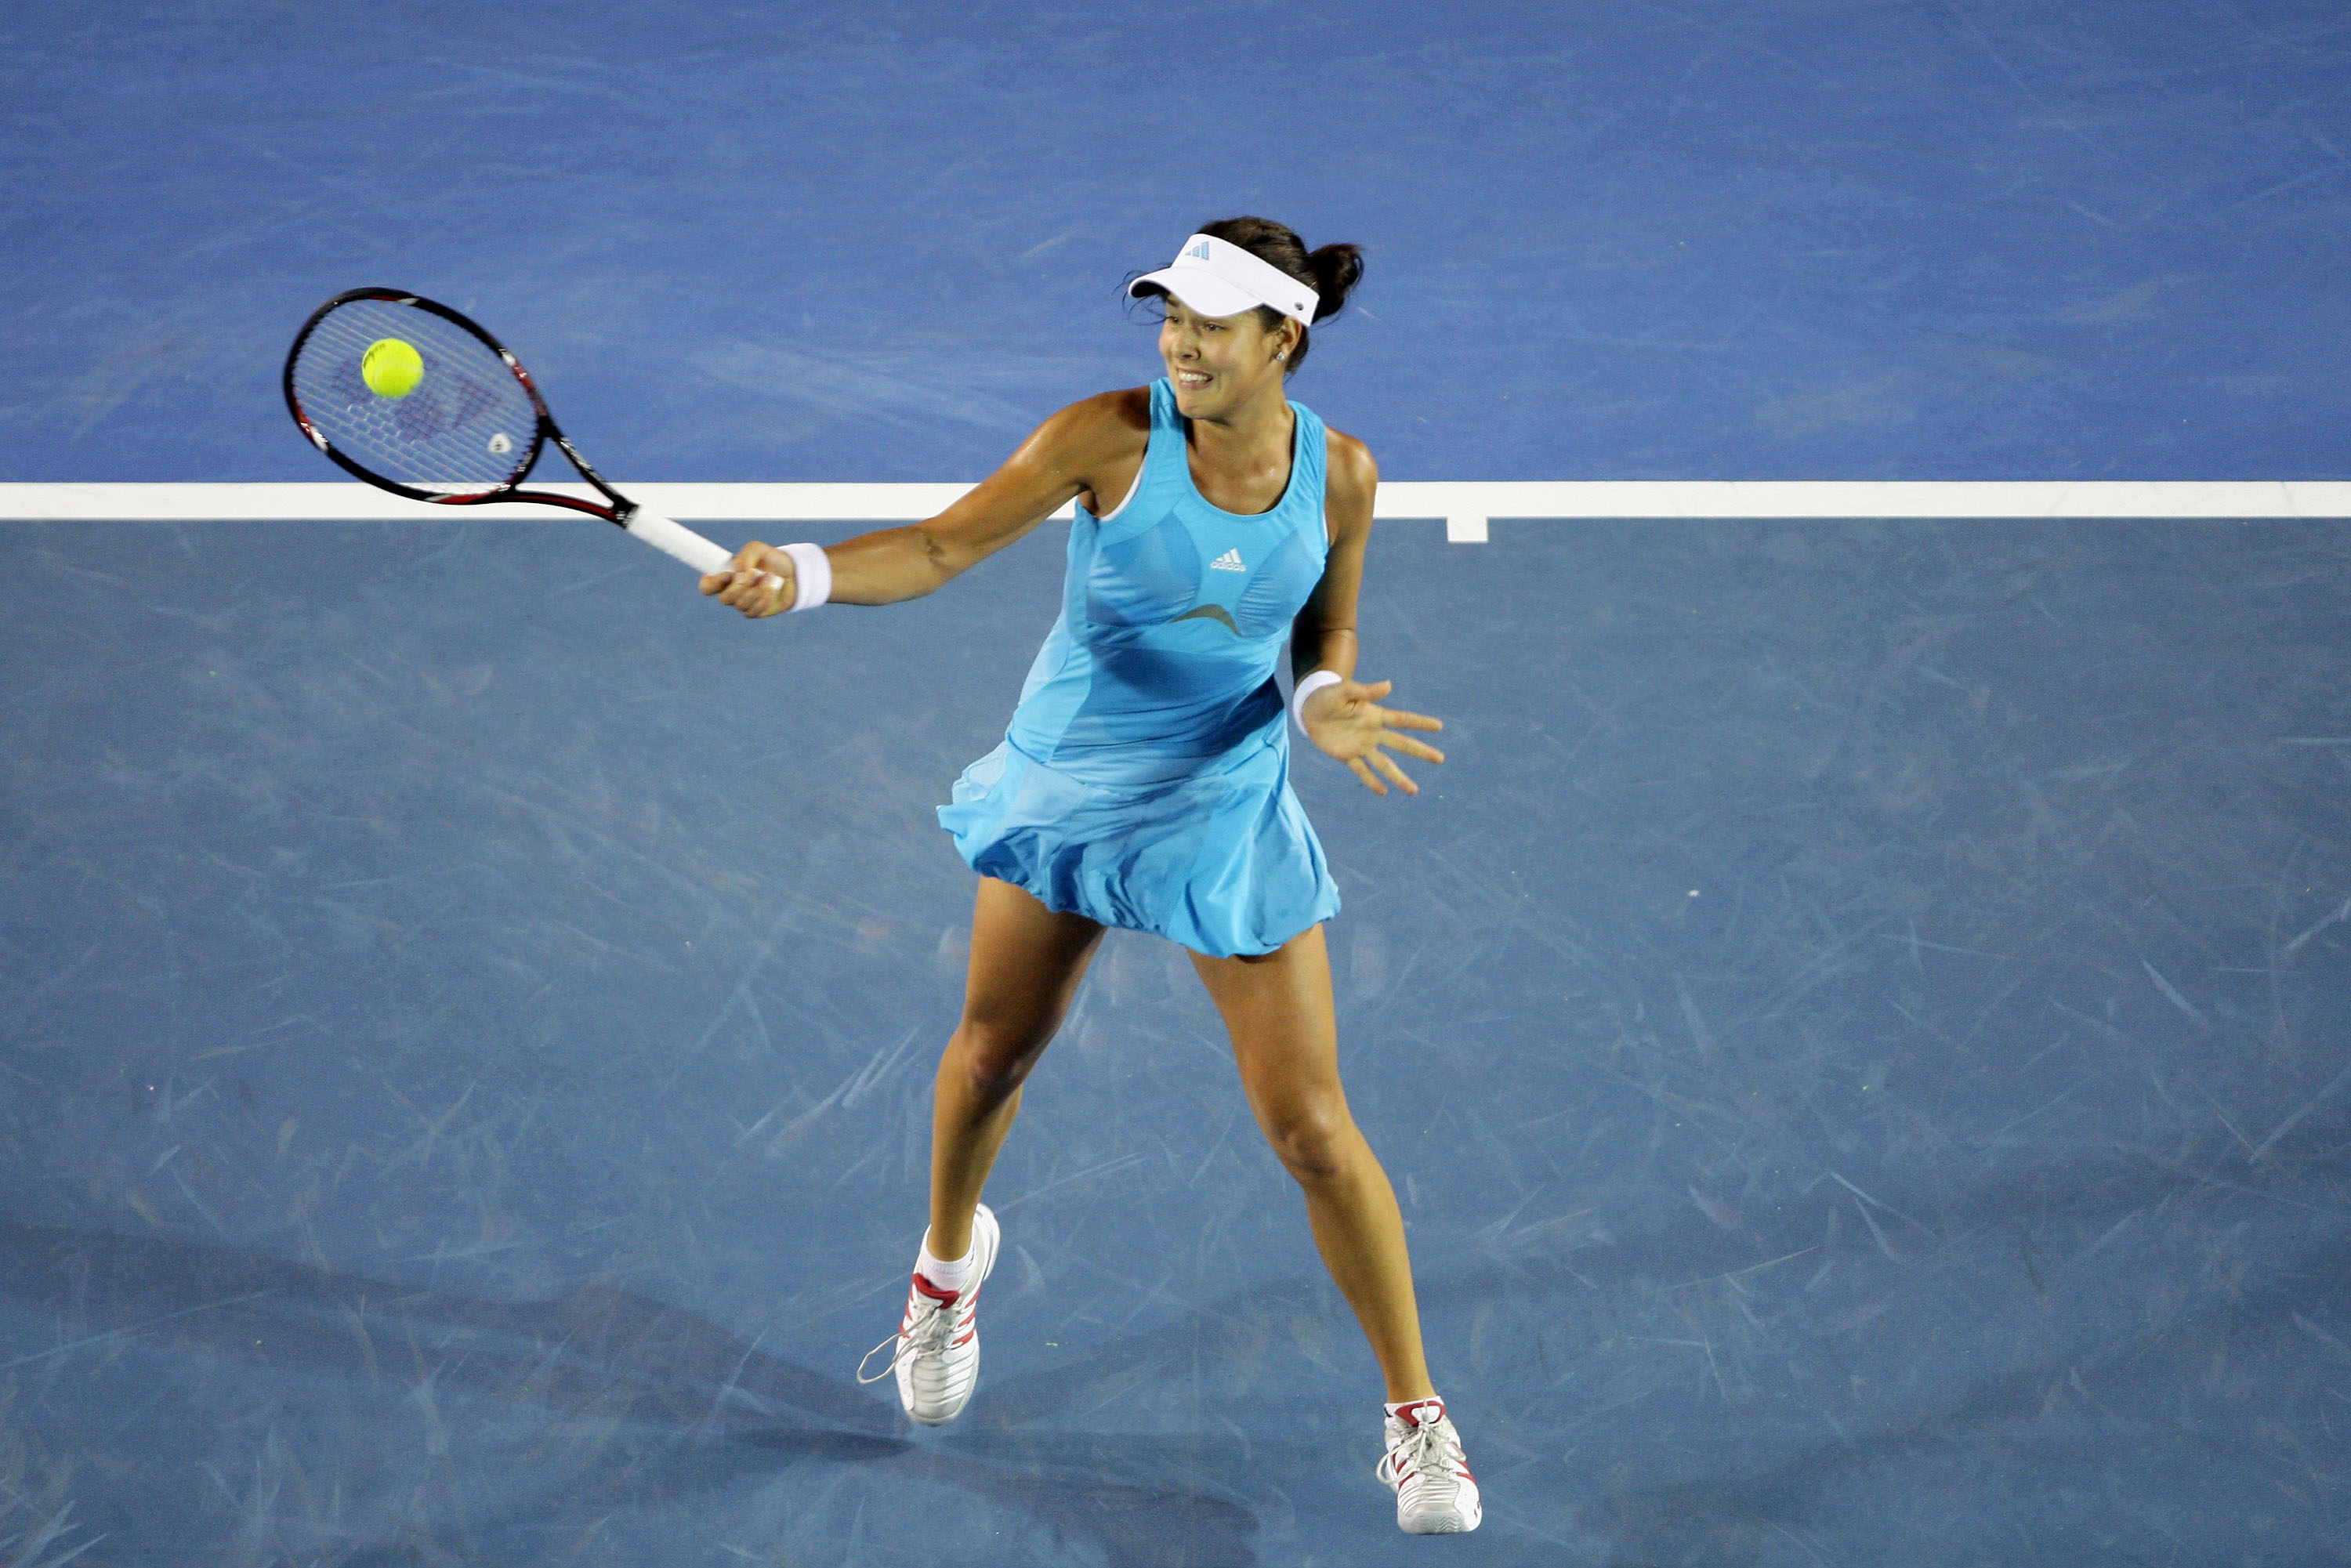 Ivanovic lost to Maria Sharapova in the 2008 Australian Open in the blue version of the Adidas bubble dress.